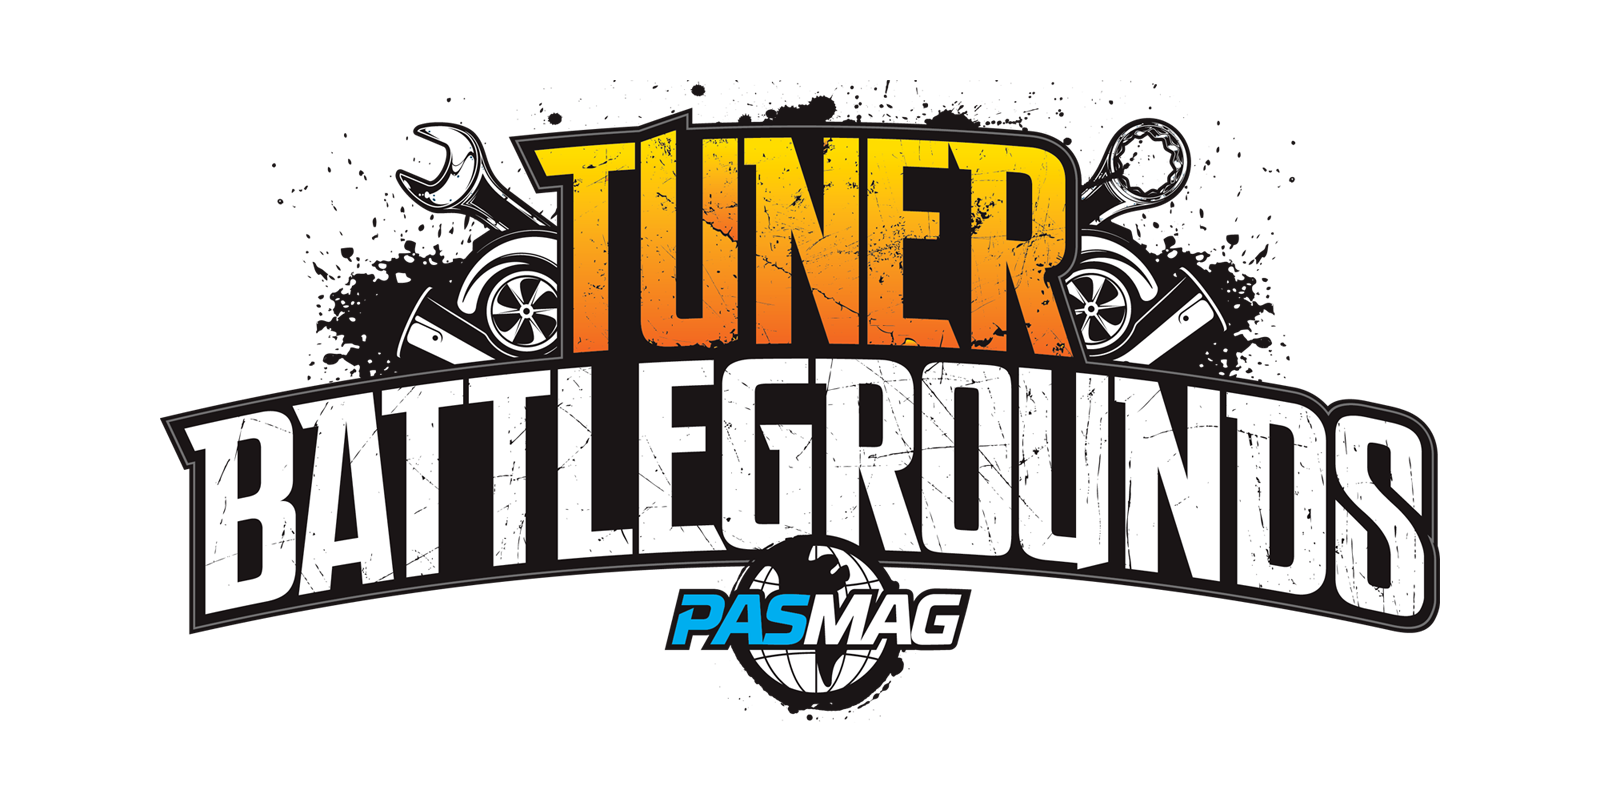 Tuner Battlegrounds Sliderv2